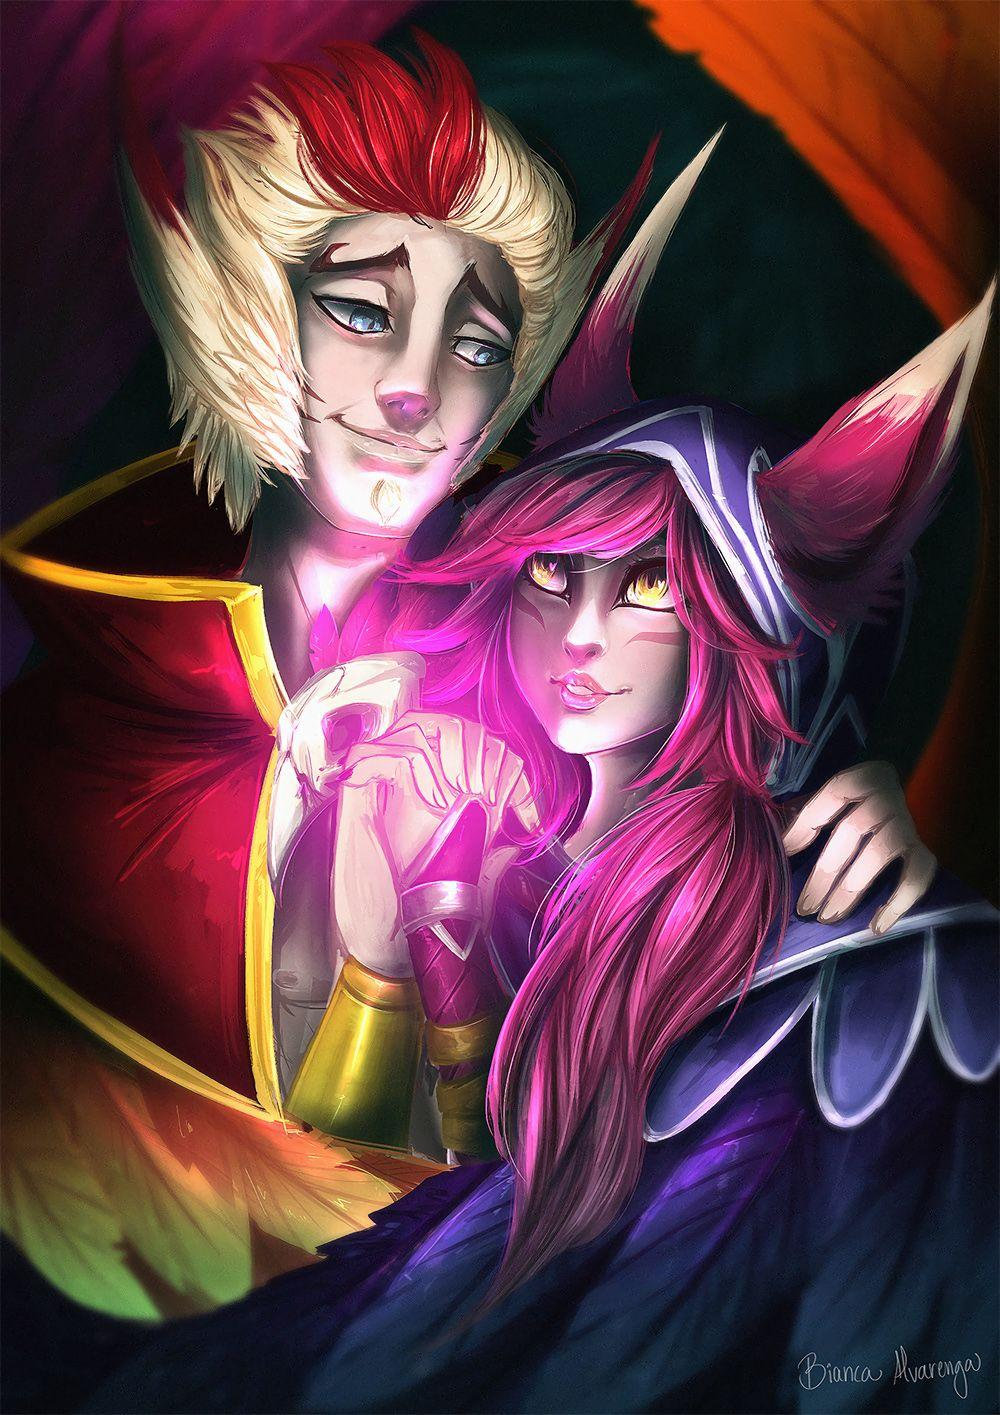 http://www.lol-wallpapers.com/wp-content/uploads/2017/04/Xayah ...